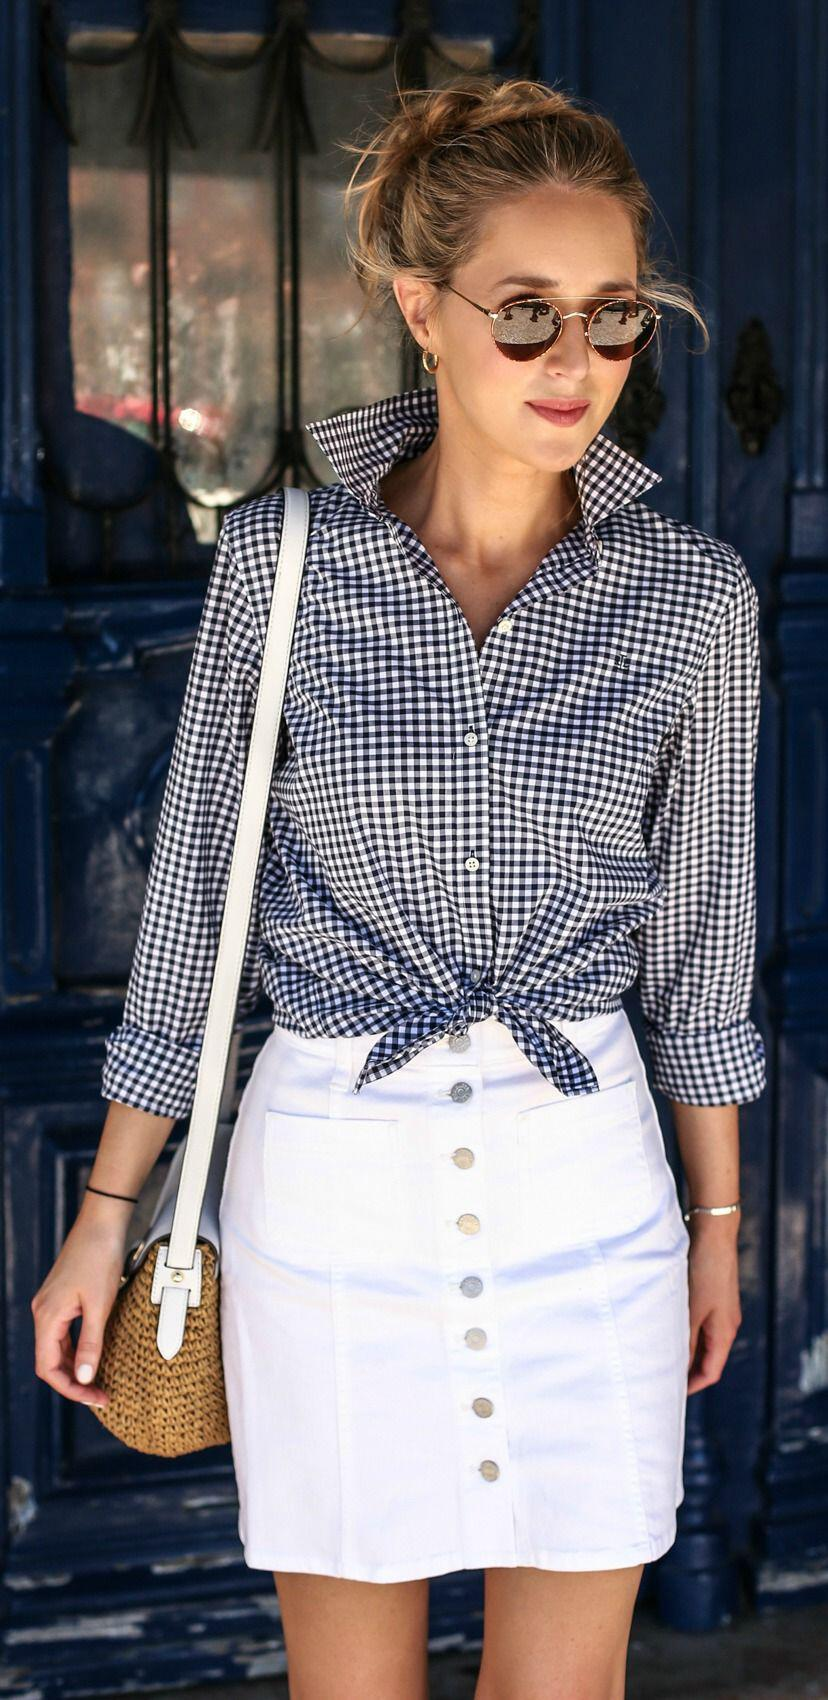 15 stylish woven bag outfits for the summer 1 - 15 stylish woven bag outfits for the summer